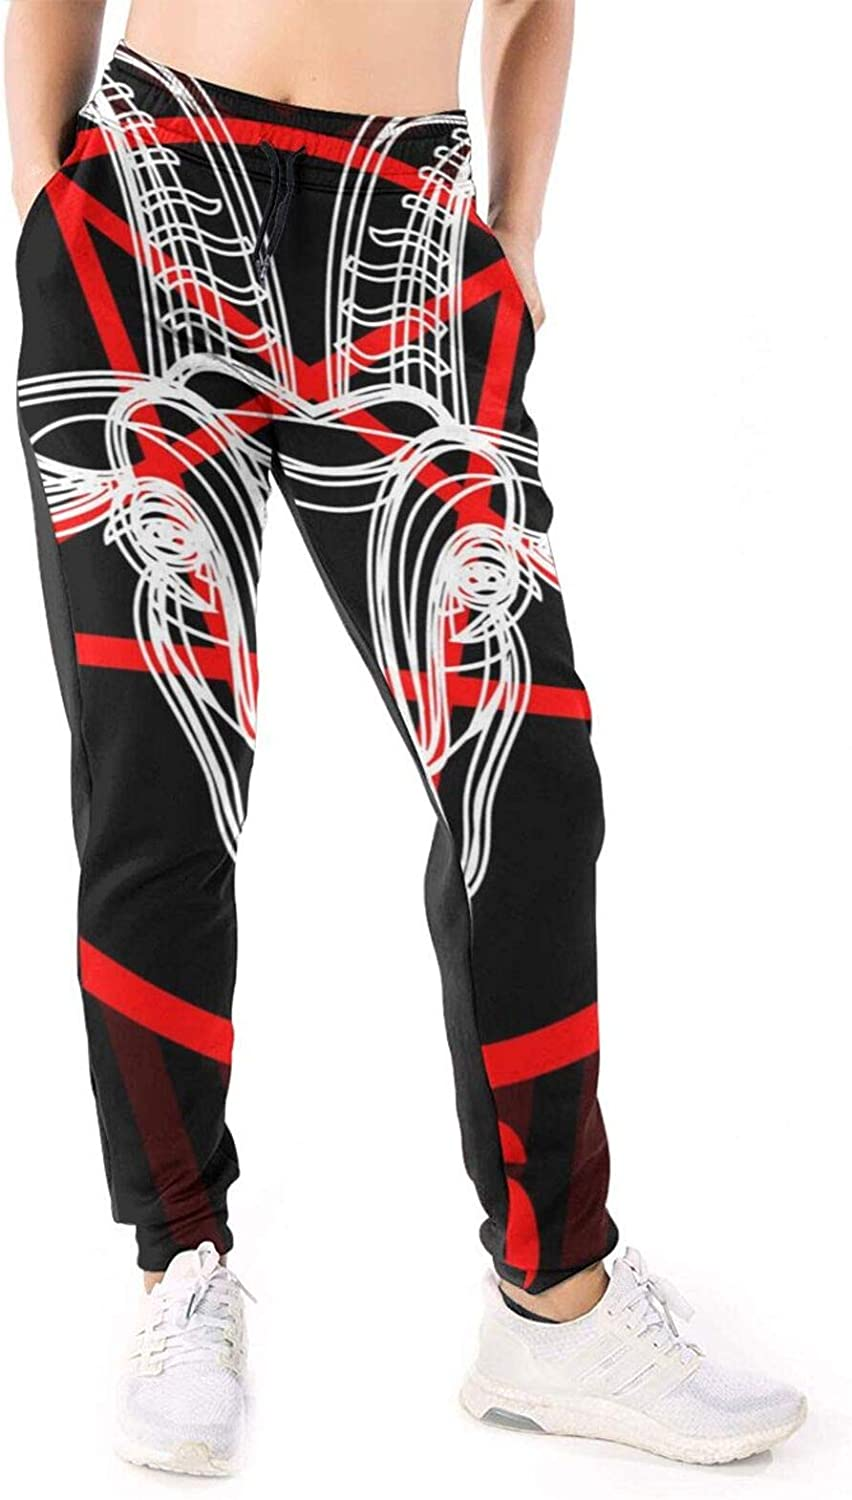 Women Joggers Pants Satanic Goat Head Athletic Sweatpants with Pockets Casual Trousers Baggy